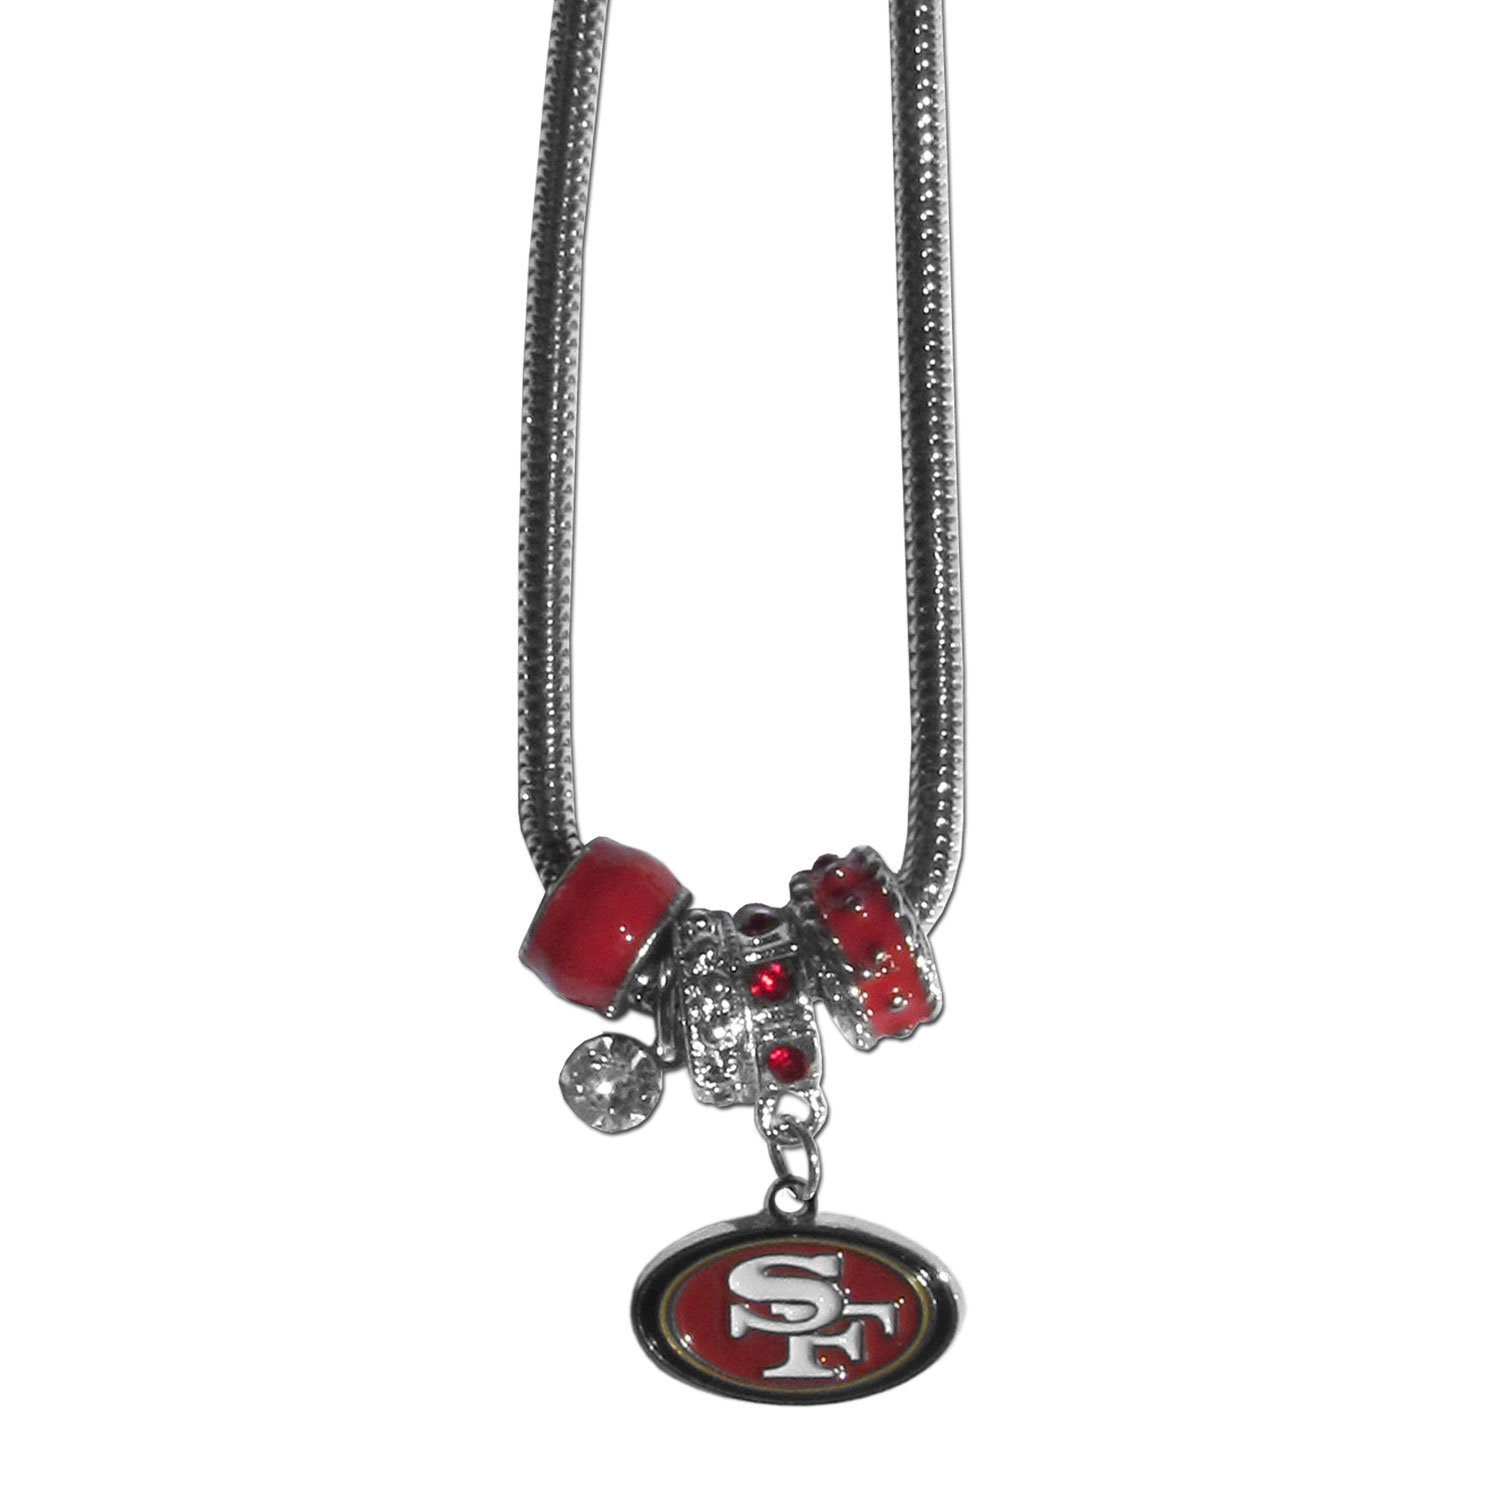 San Francisco 49ers Euro Bead Necklace - We have combined the wildly popular Euro style beads with your favorite team to create our San Francisco 49ers bead necklace. The 18 inch snake chain features 4 Euro beads with enameled team colors and rhinestone accents with a high polish, nickel free charm and rhinestone charm. Perfect way to show off your team pride.